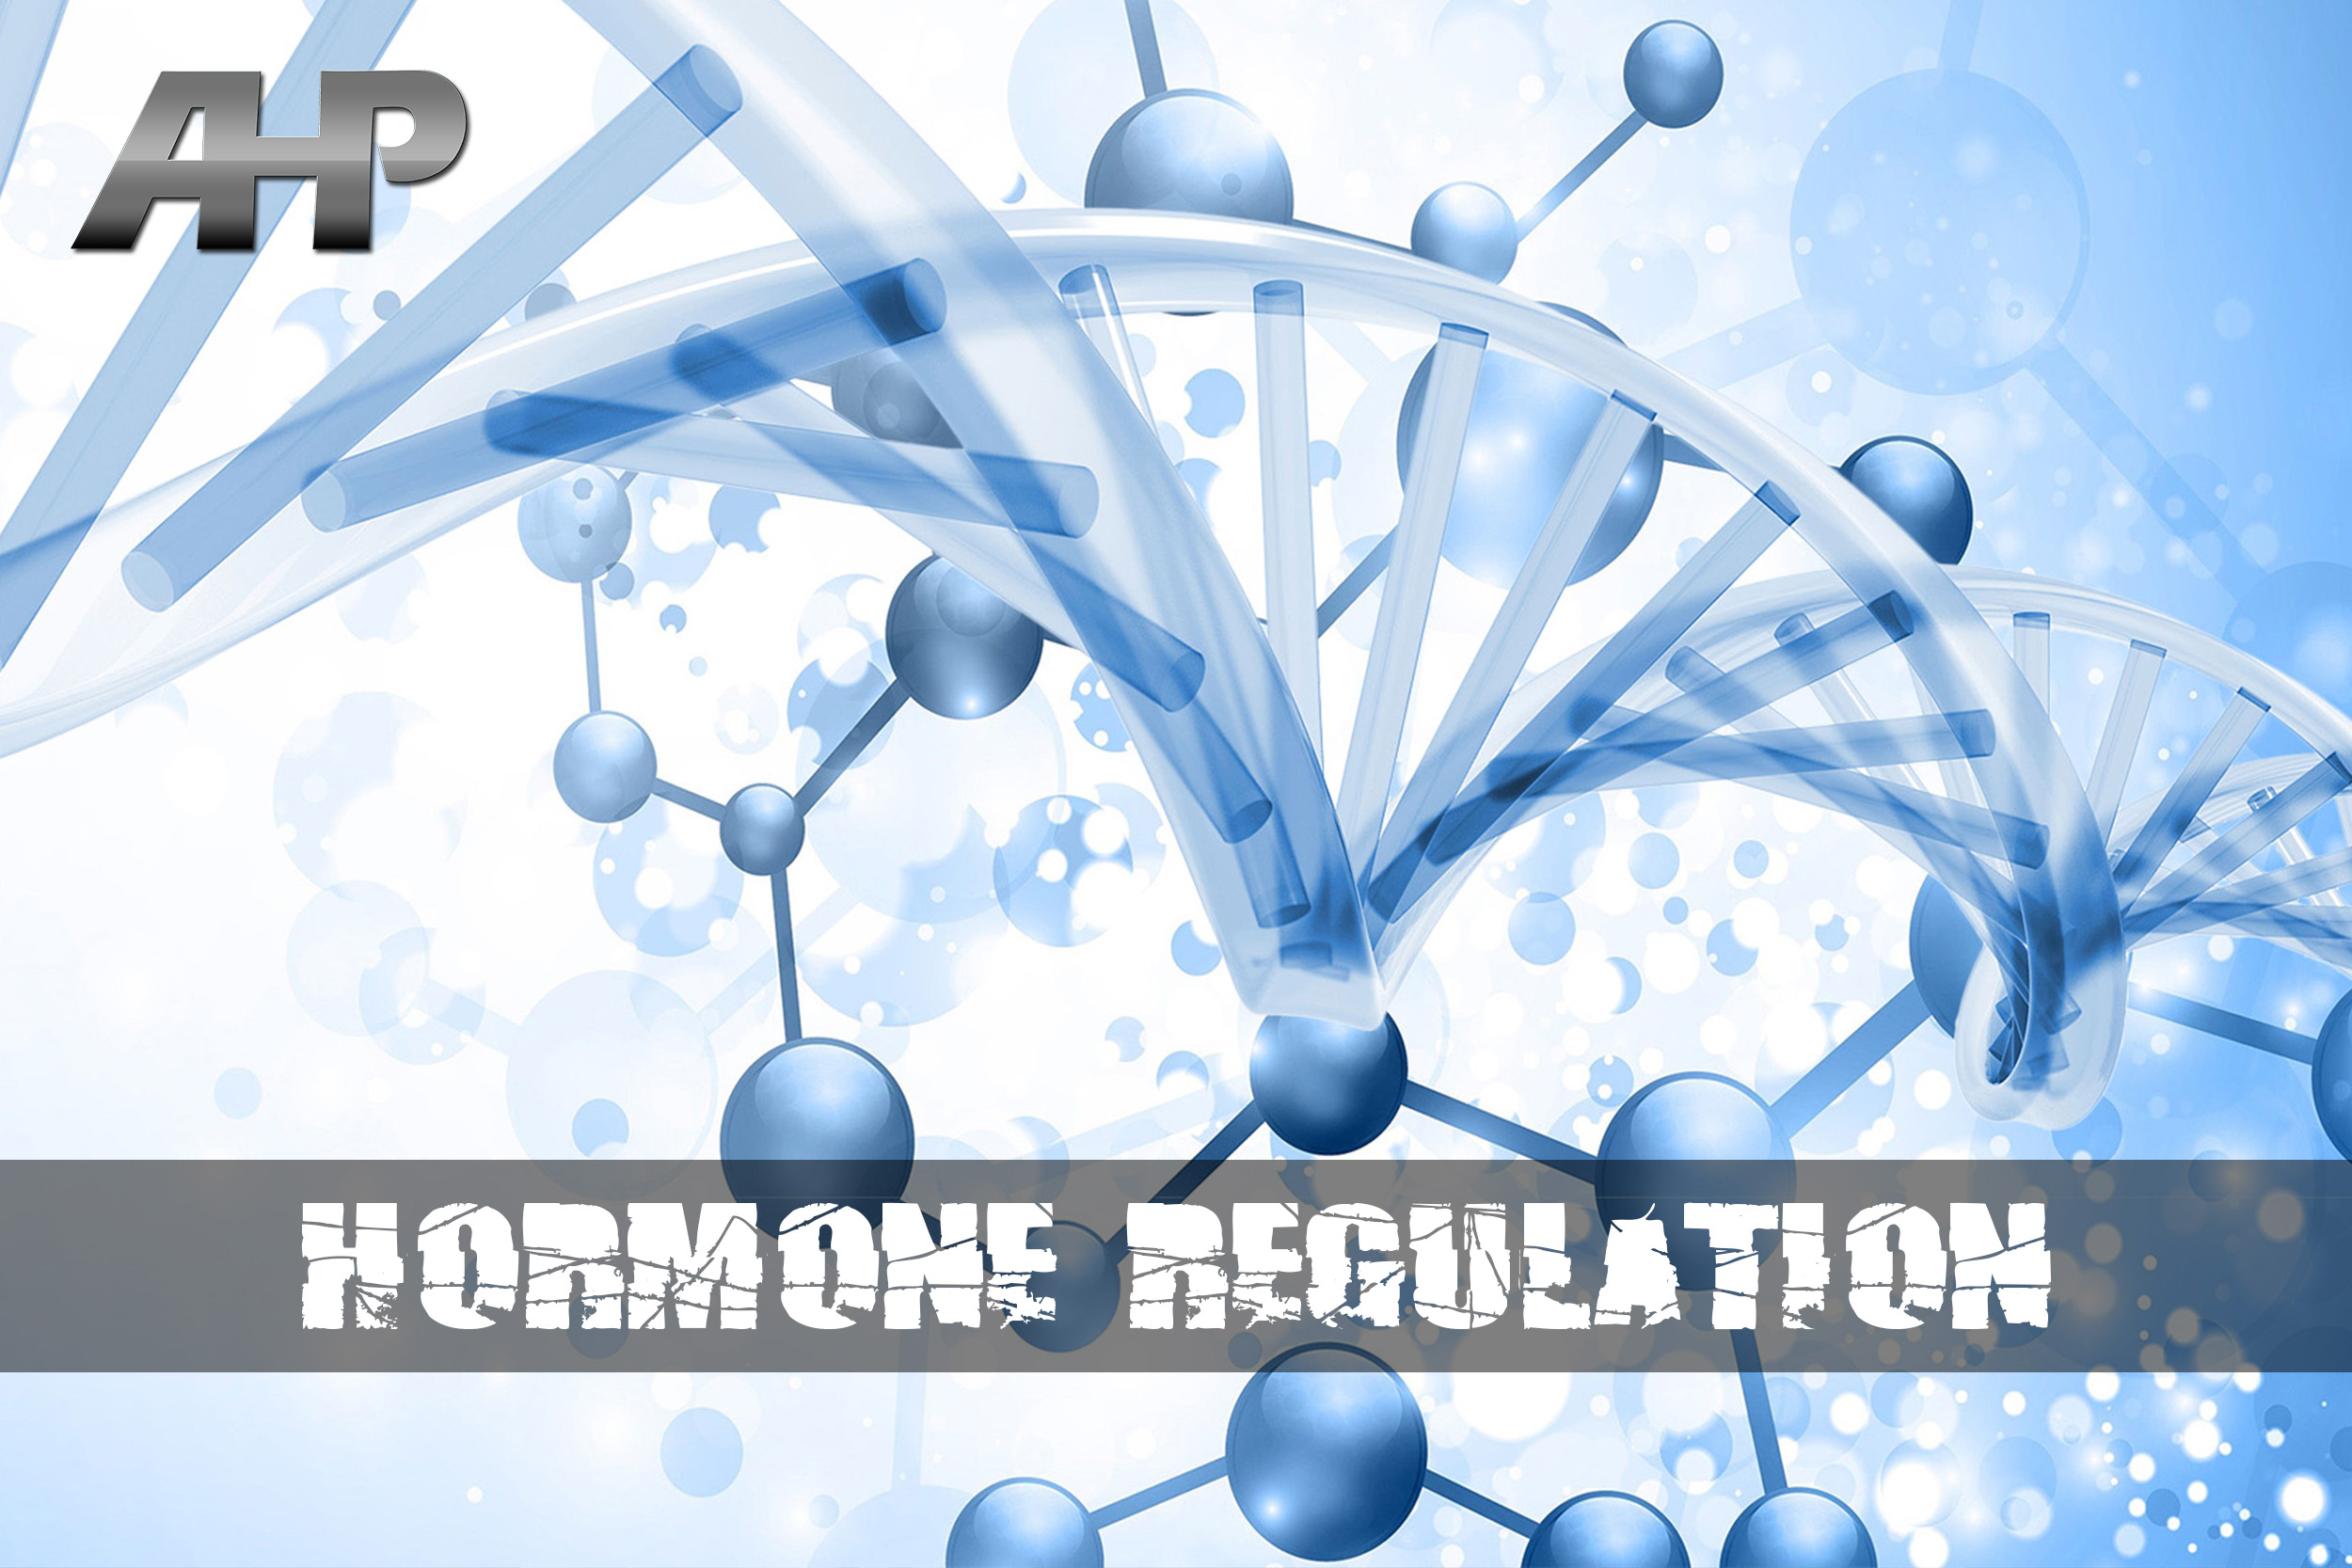 Hormone Regulation - AHP.jpg